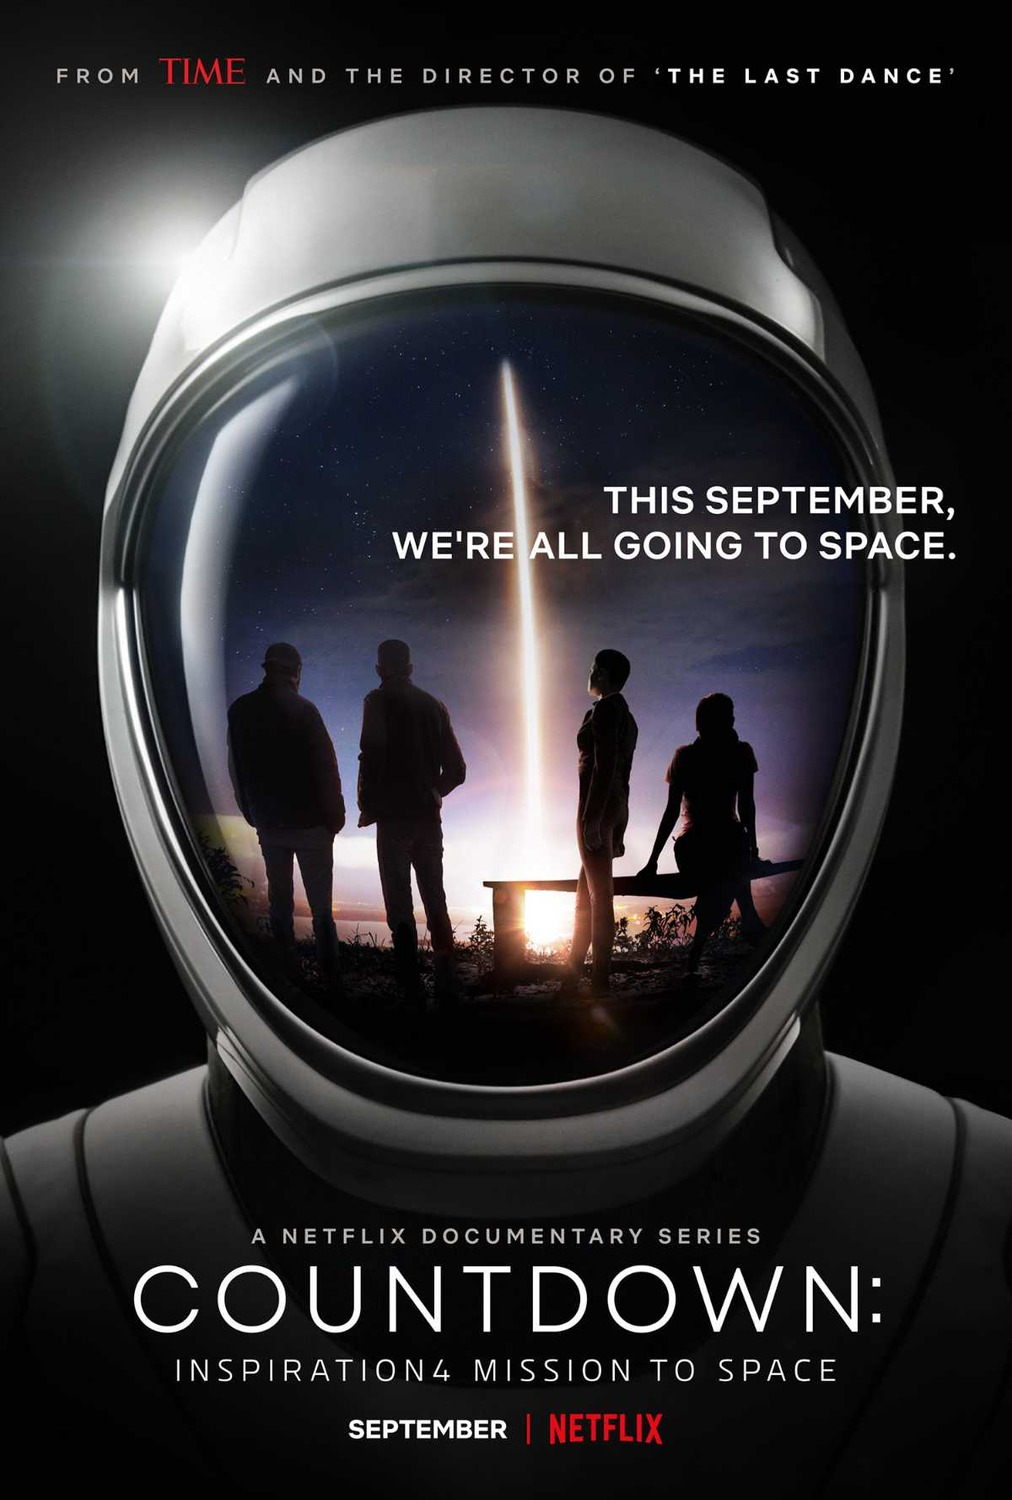 Countdown: Inspiration4 Mission to Space (S01)